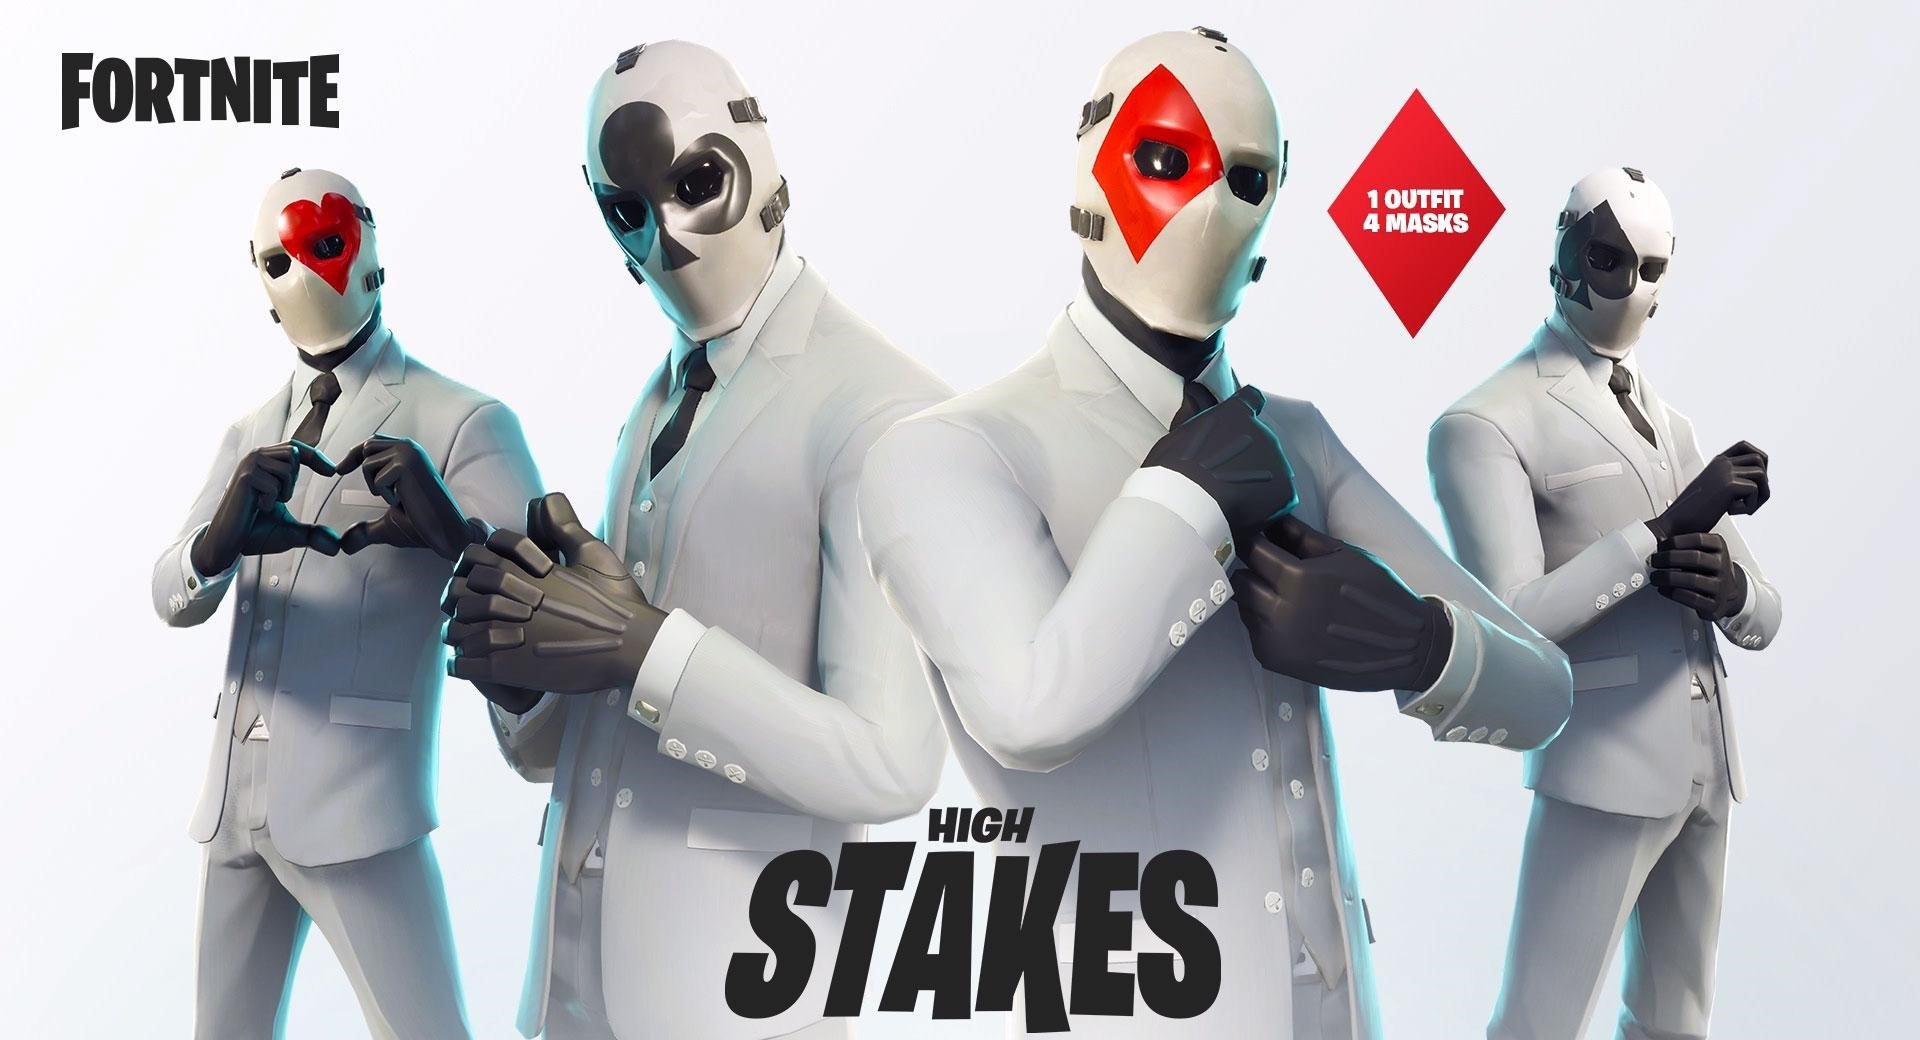 the wildcard skin as it s called is customizable you can swap out 4 different playing card themed masks to top off your white suit - photo de skin fortnite saison 5